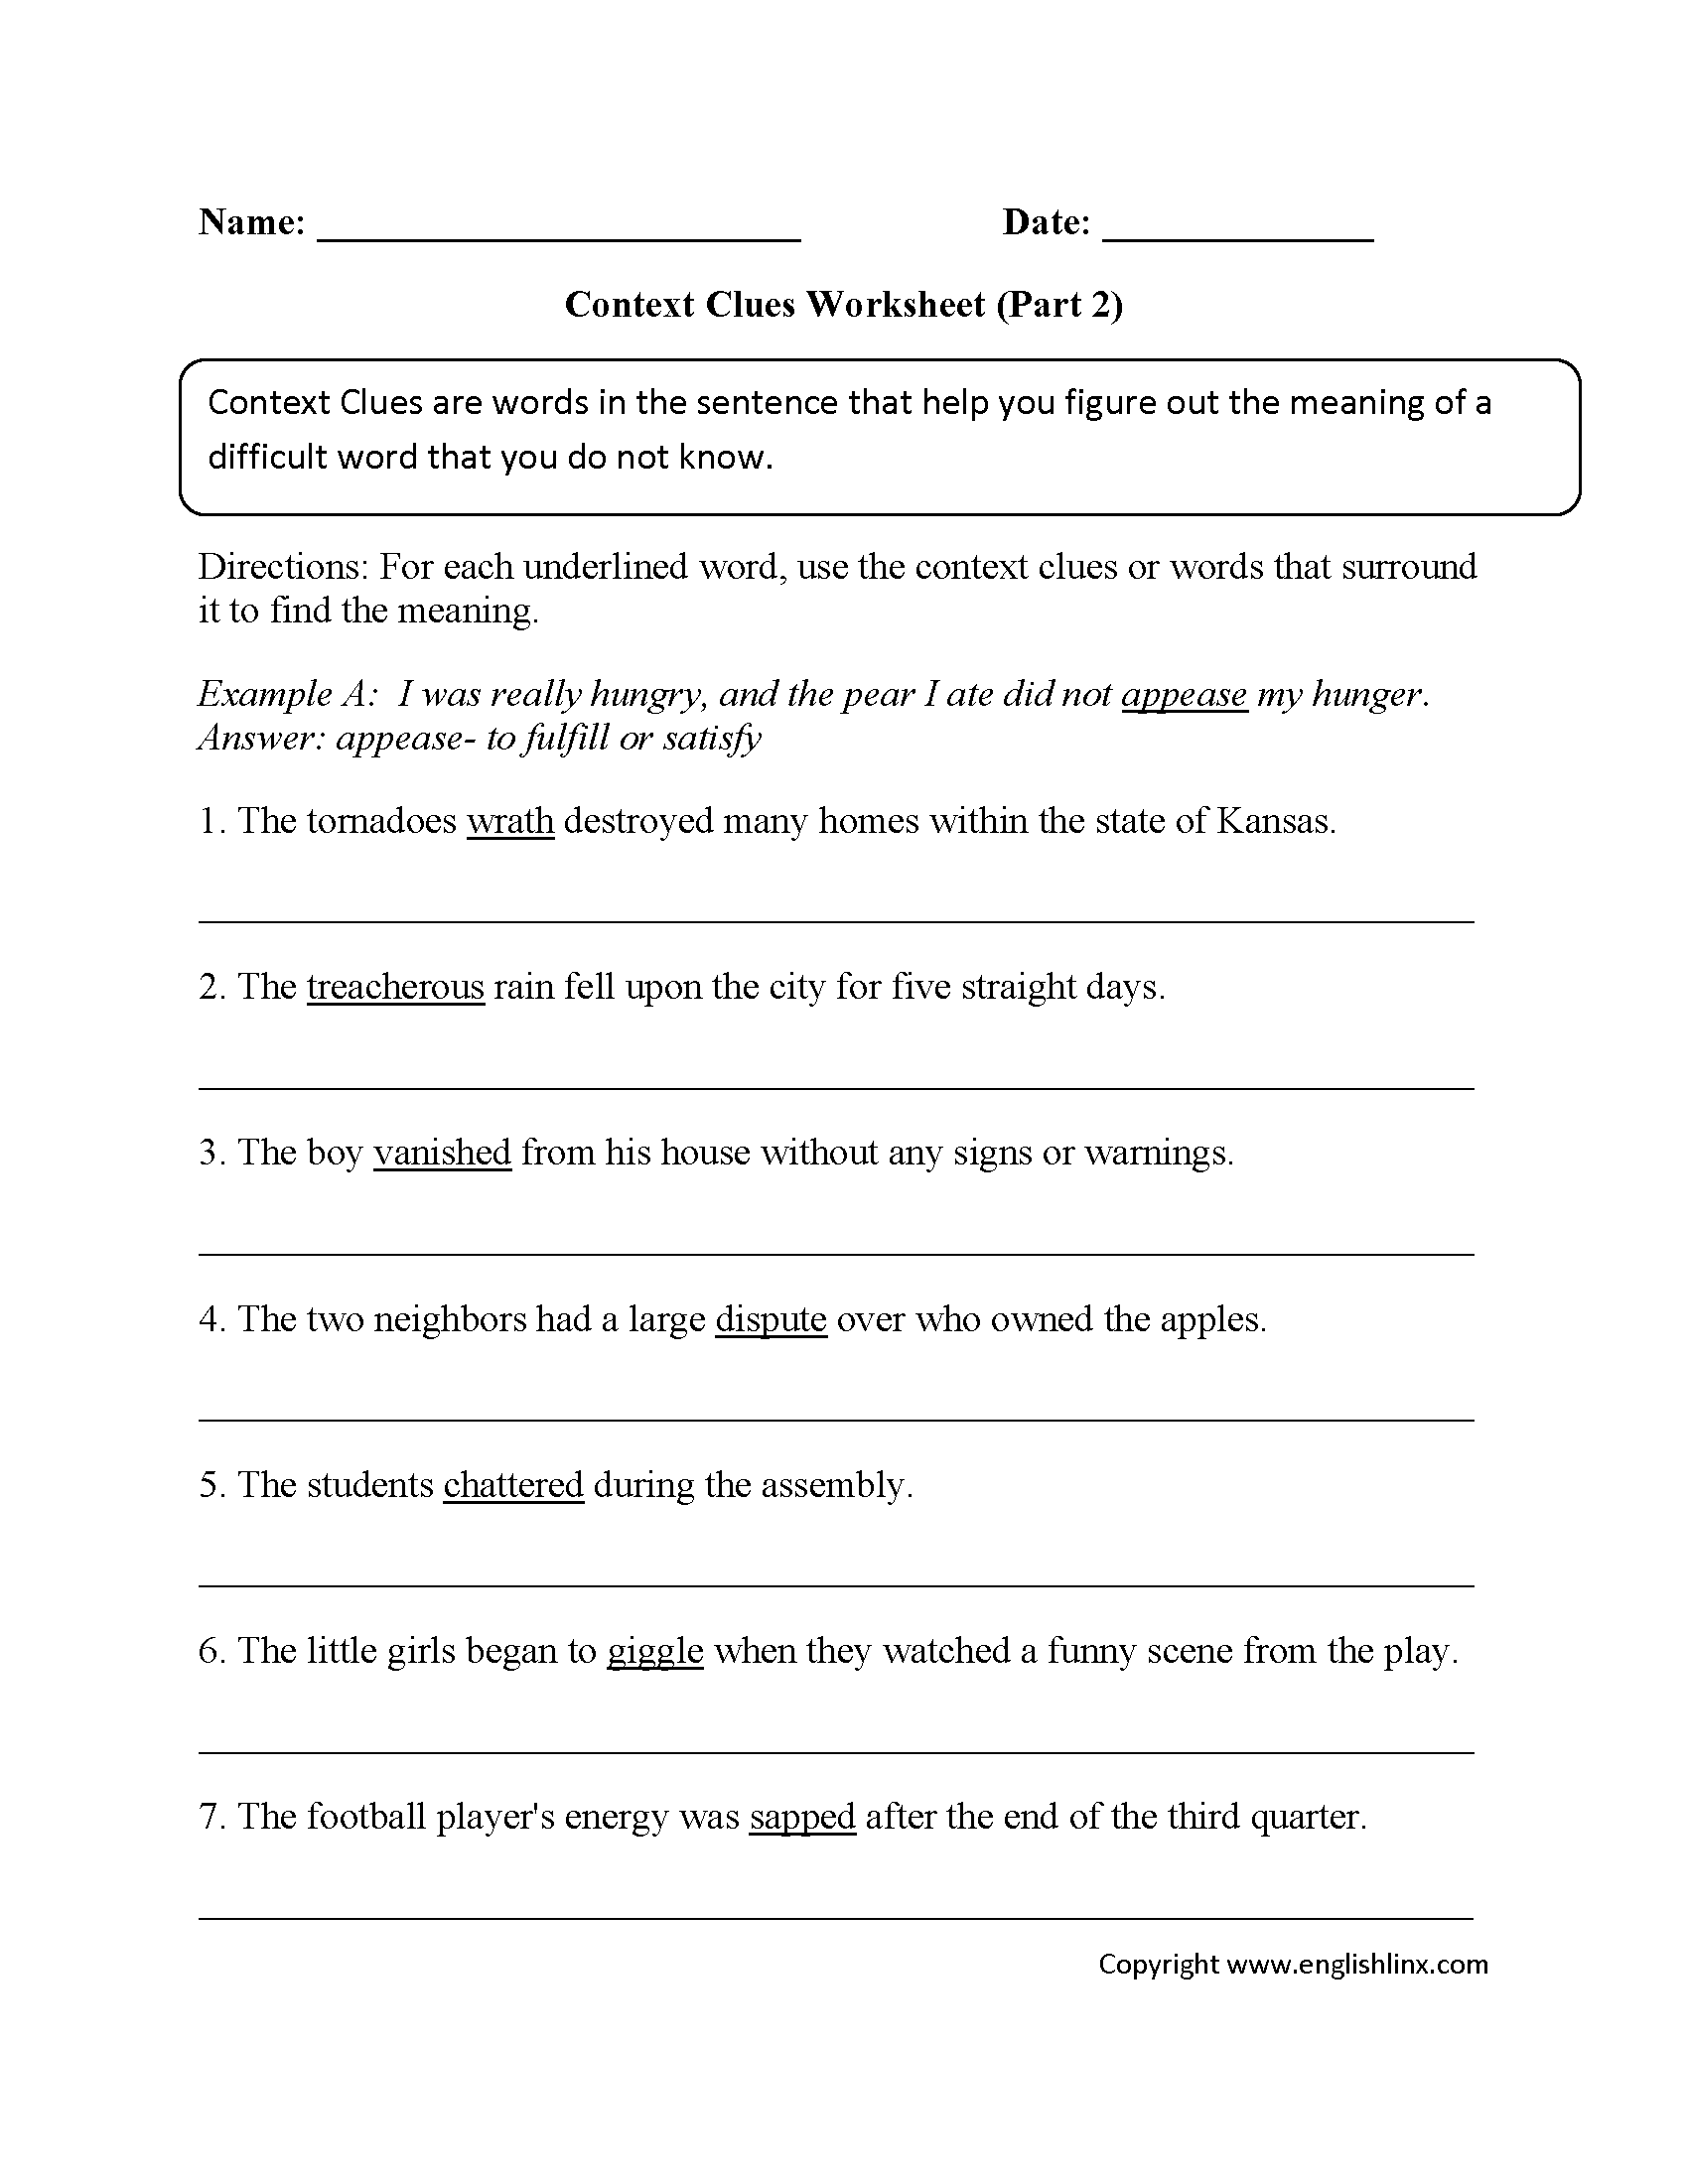 Uncategorized Context Clues Worksheets 3rd Grade teaching context clues 3rd grade activities lawteched books for lawteched